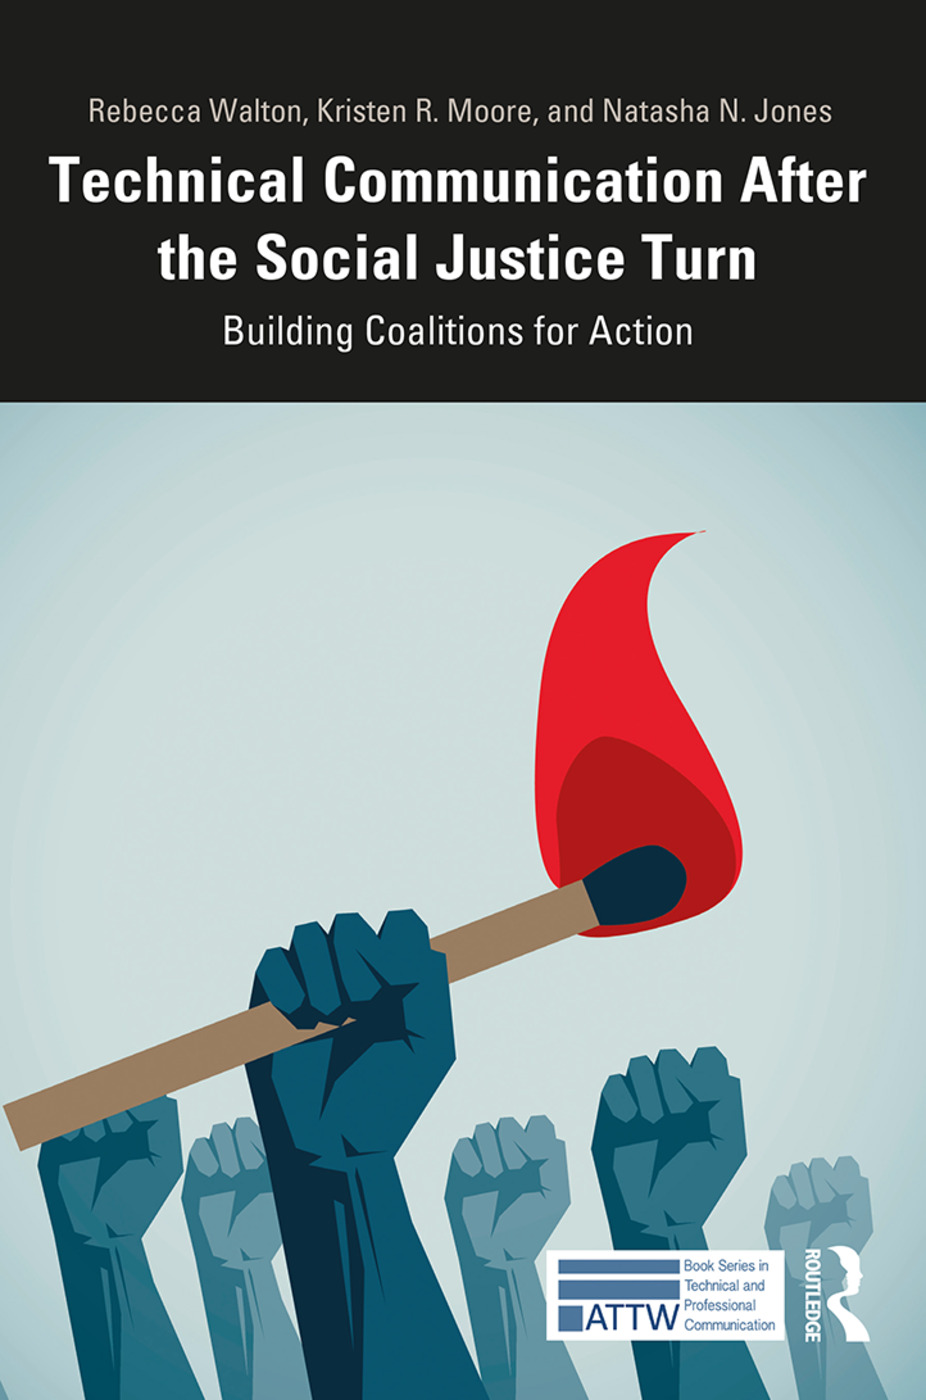 Technical Communication After the Social Justice Turn: Building Coalitions for Action book cover